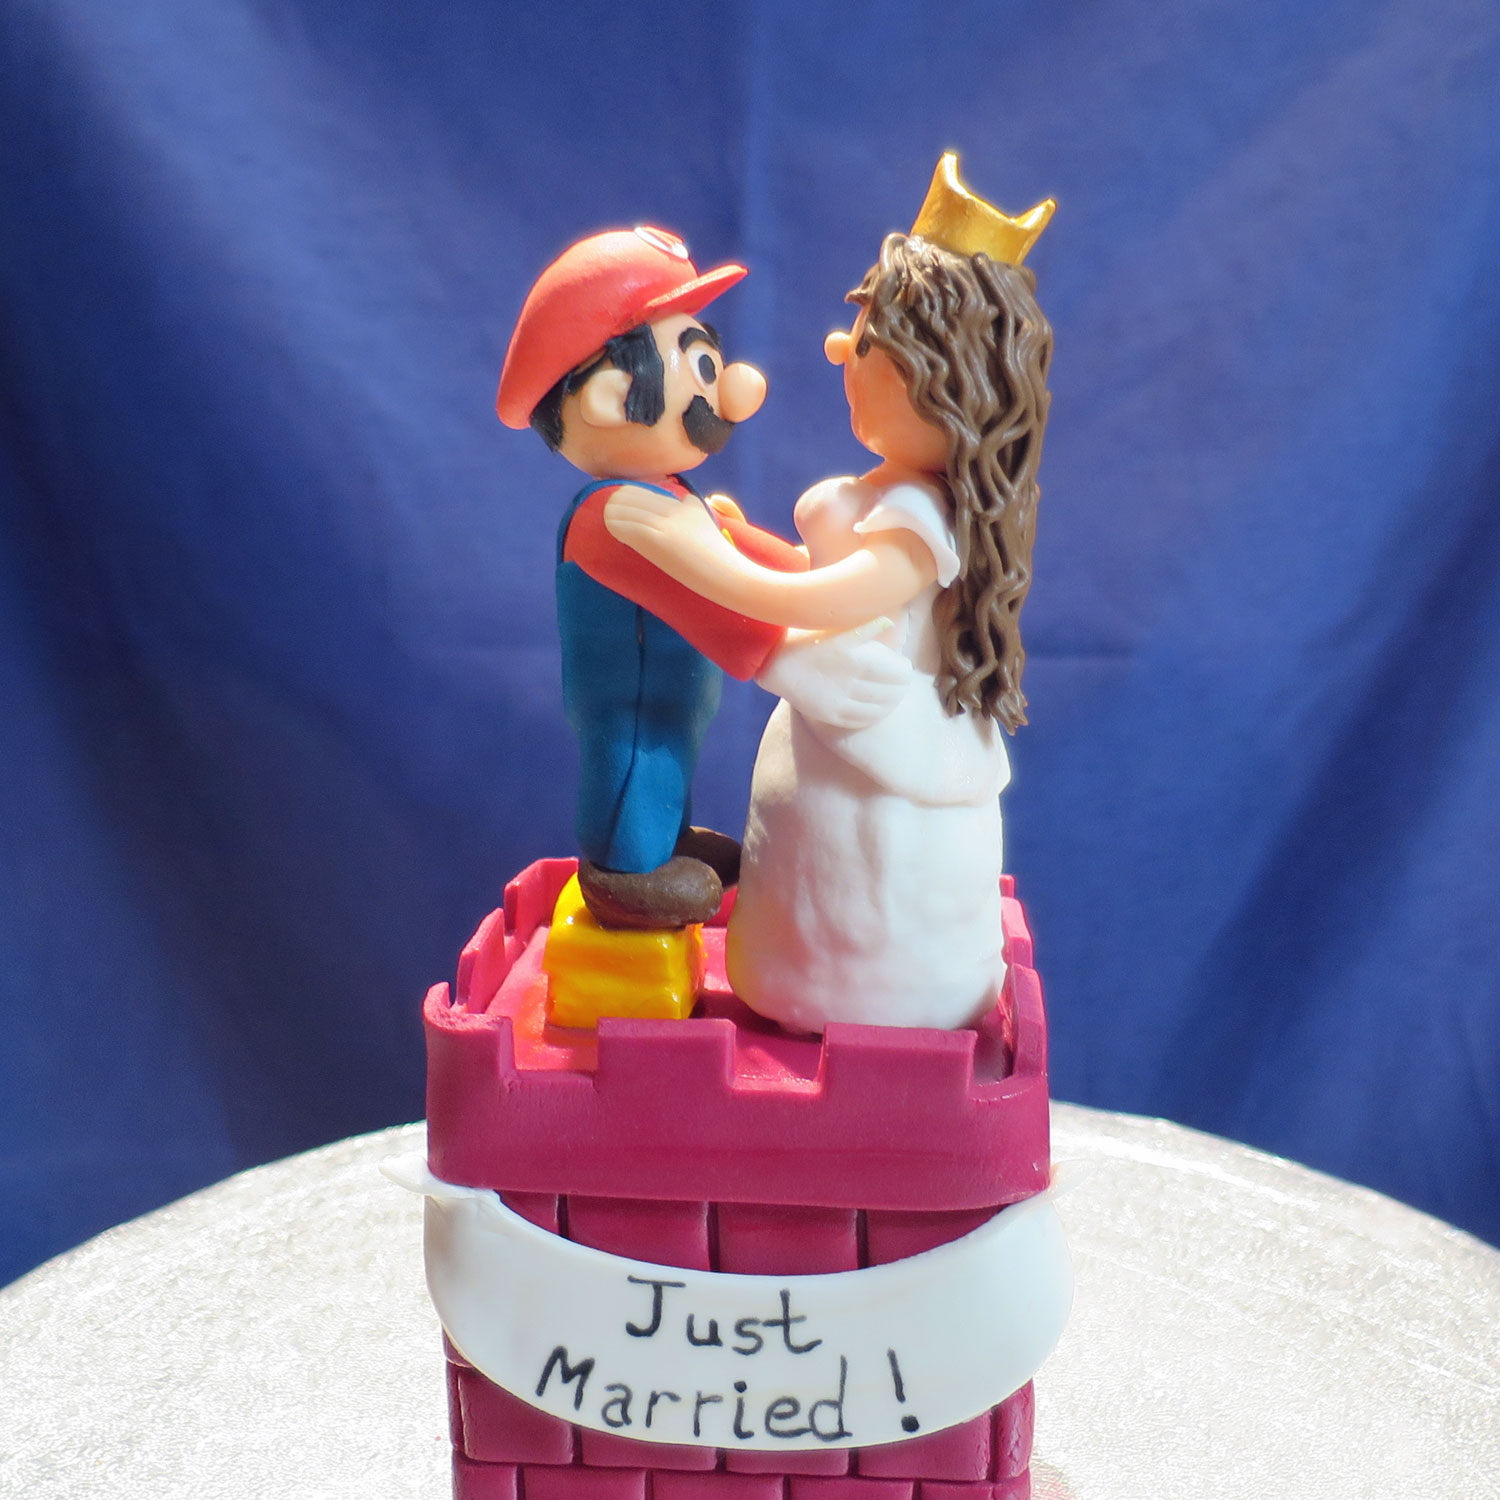 Super Mario & Princess Peach